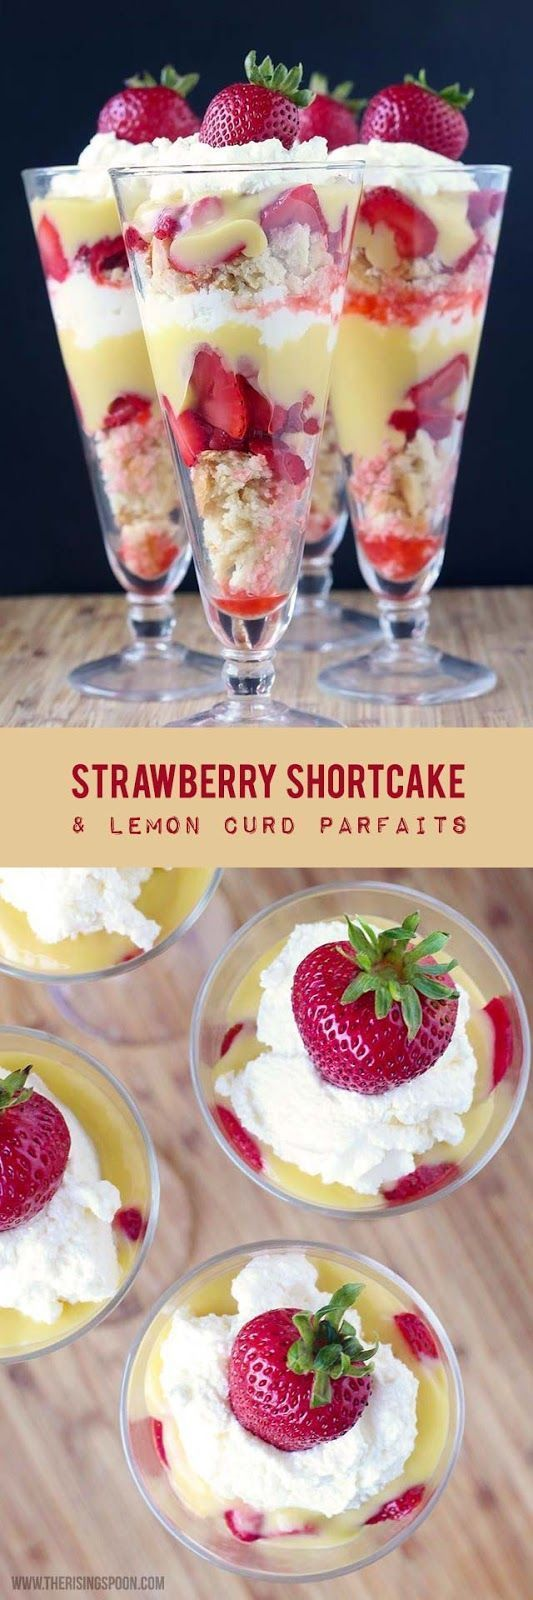 YUM! An easy recipe for strawberry shortcake parfaits layered with a bright, sweet & creamy lemon curd. This dessert is absolute BLISS in every bite and it's beautiful, as well!